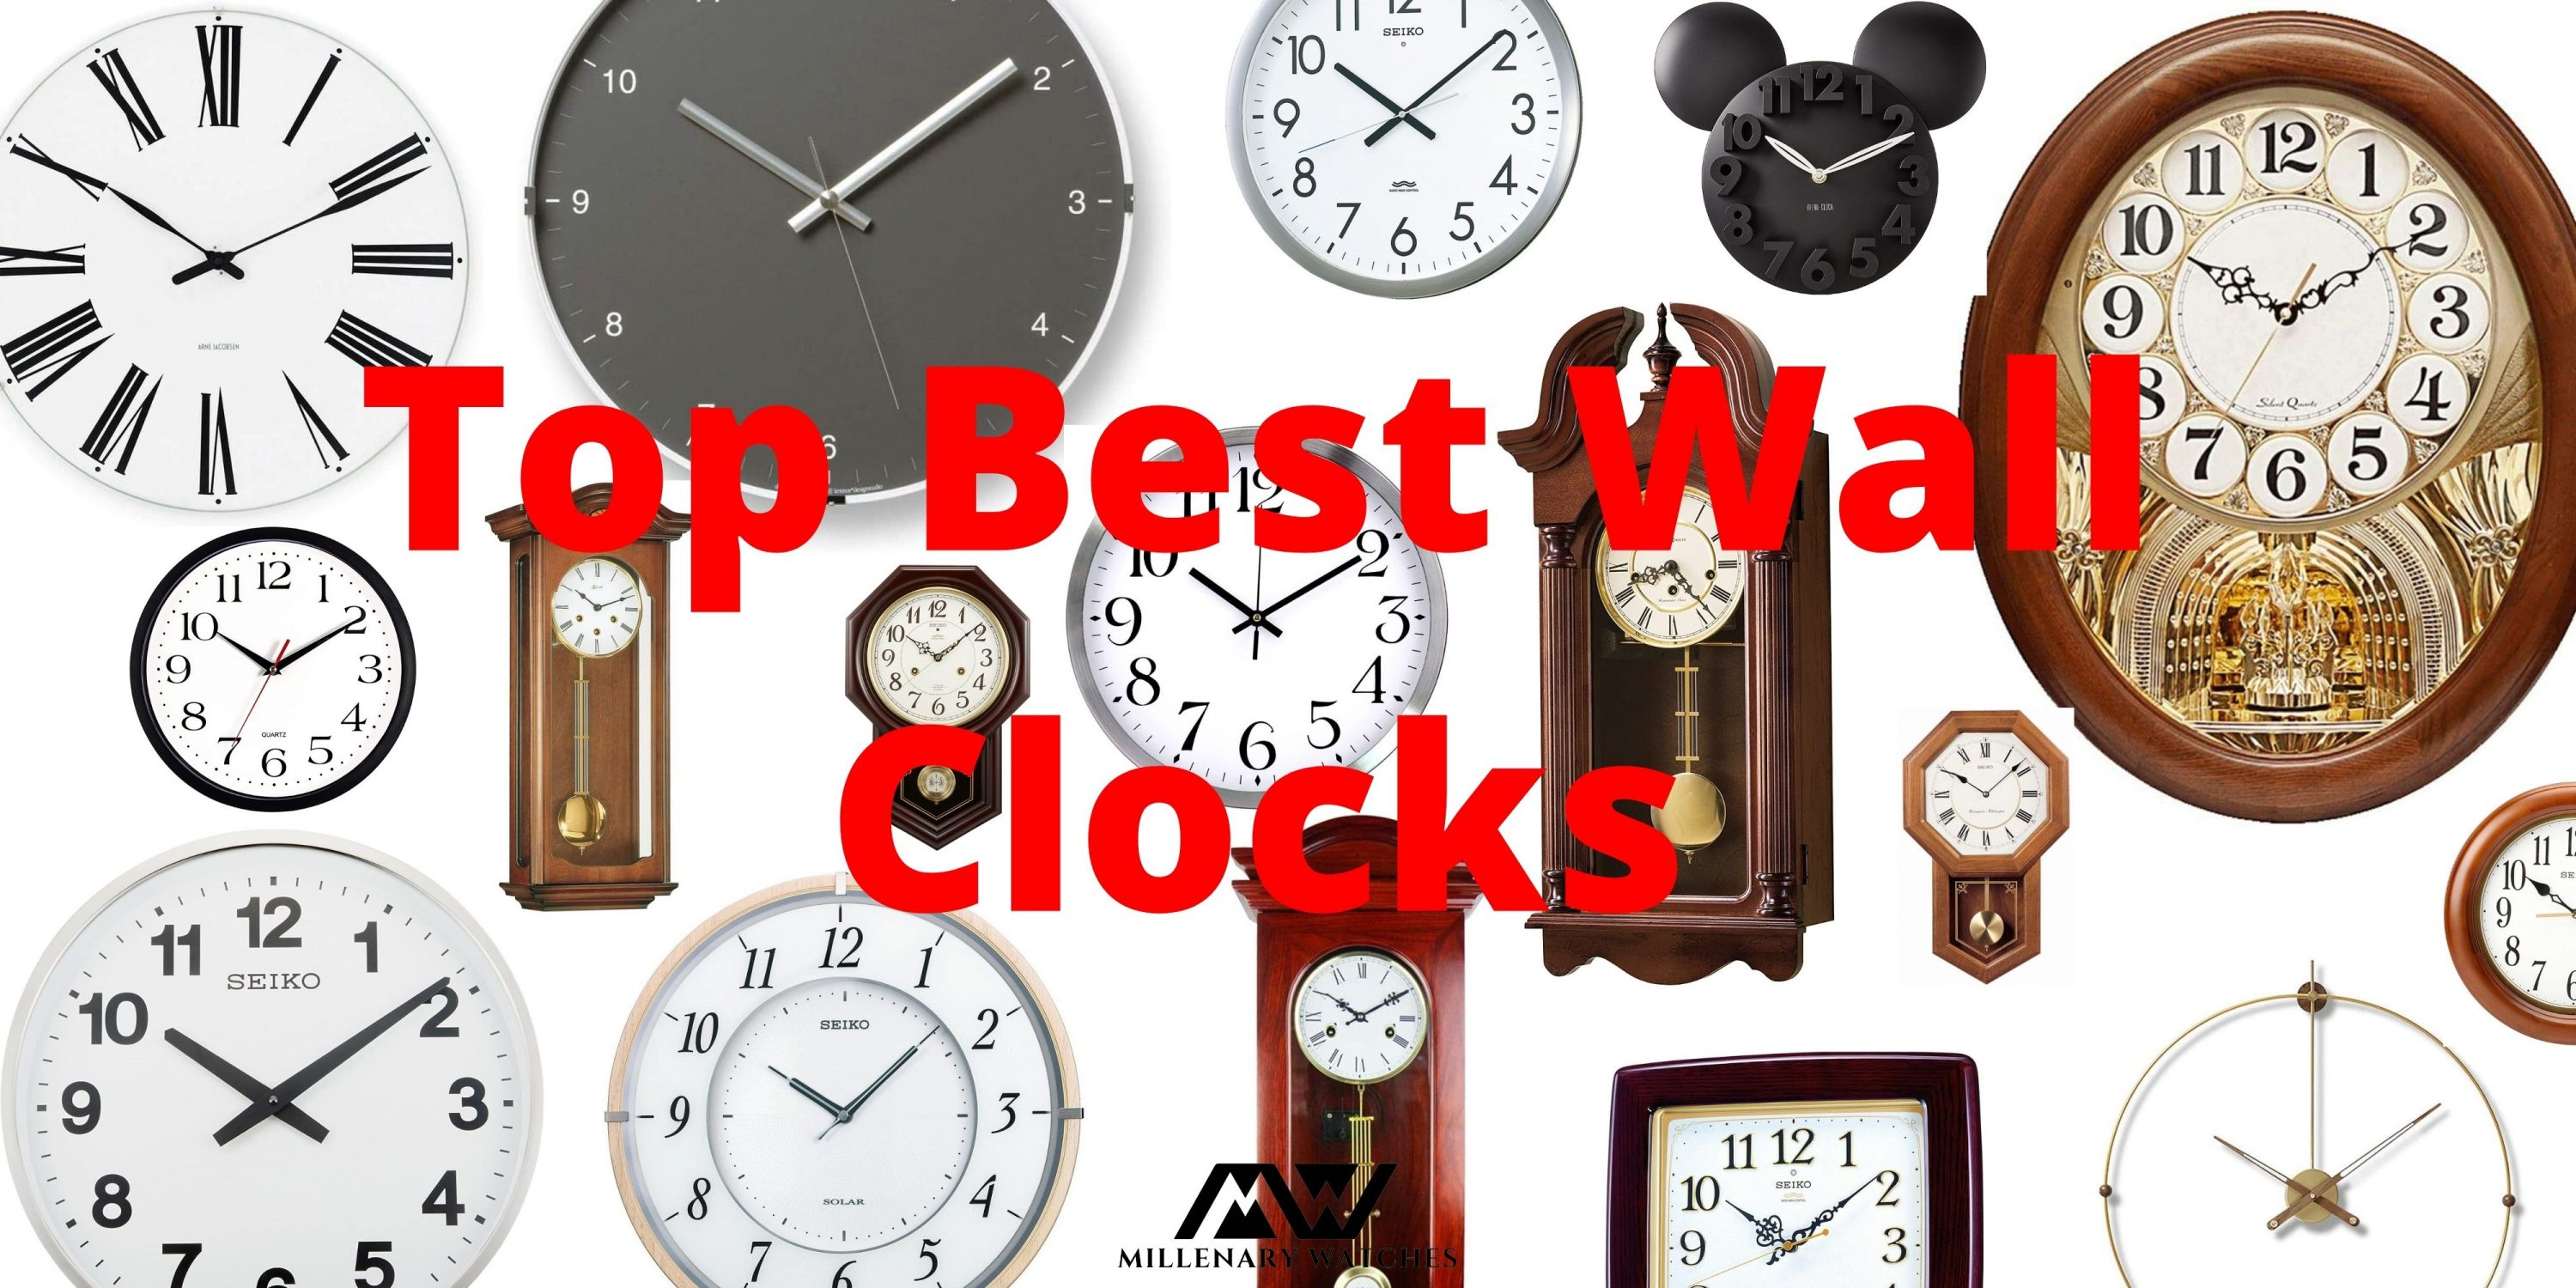 Top 18 Best Wall Clocks [Guide & List]